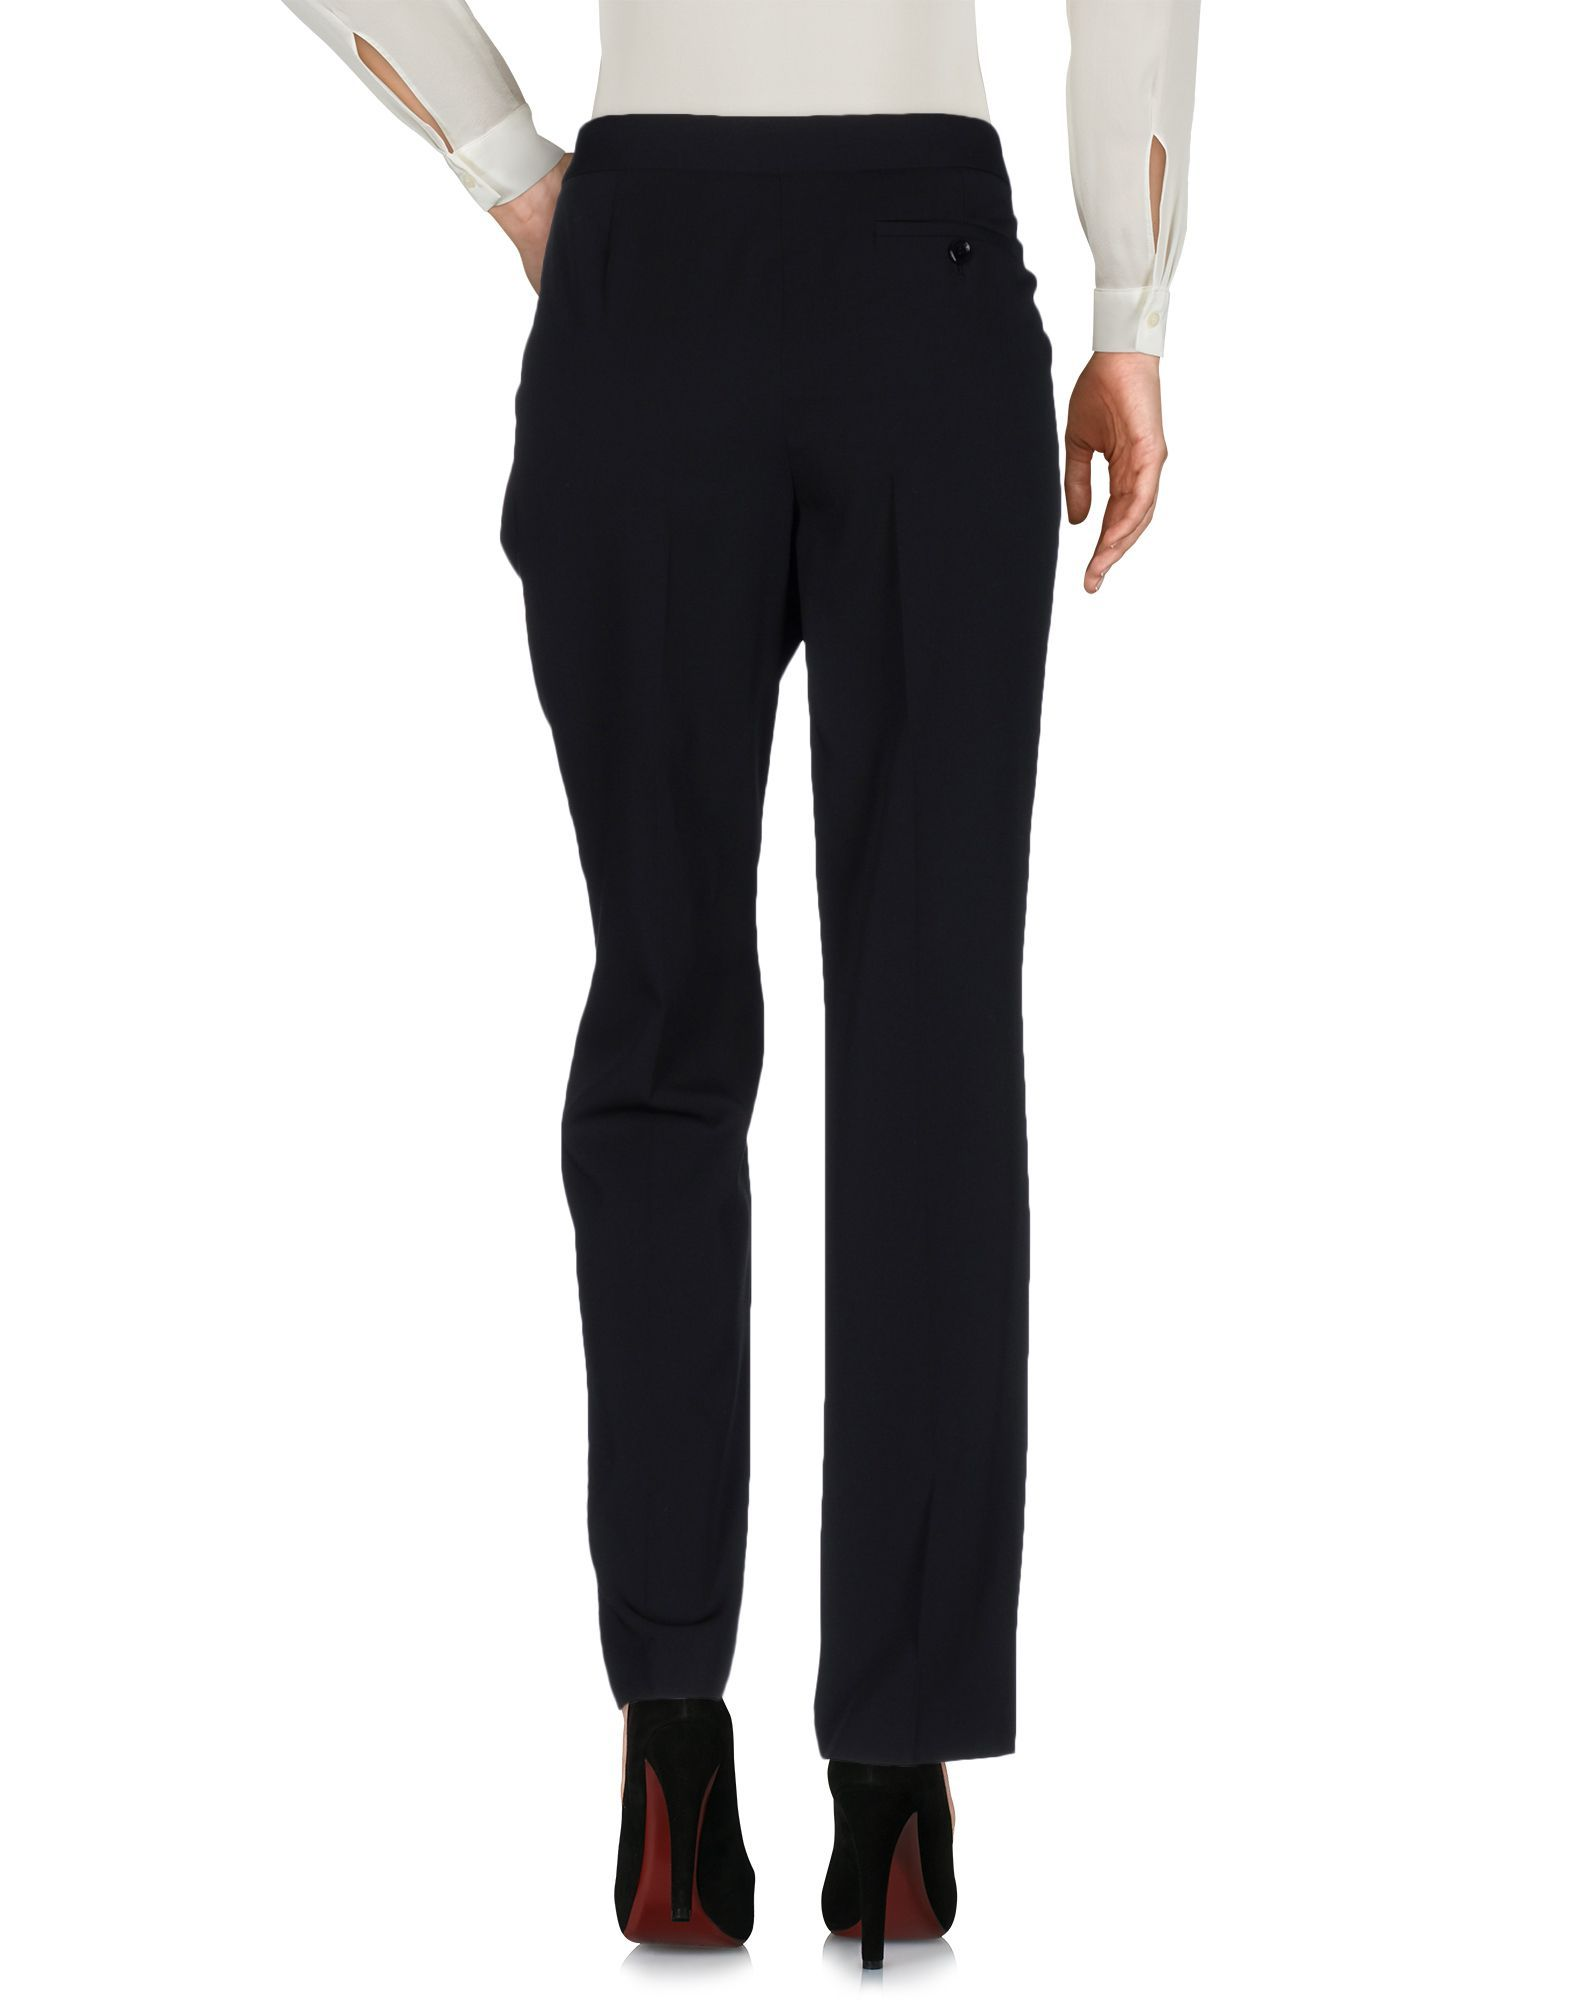 Moschino Cheap And Chic Black Wool Tailored Trousers